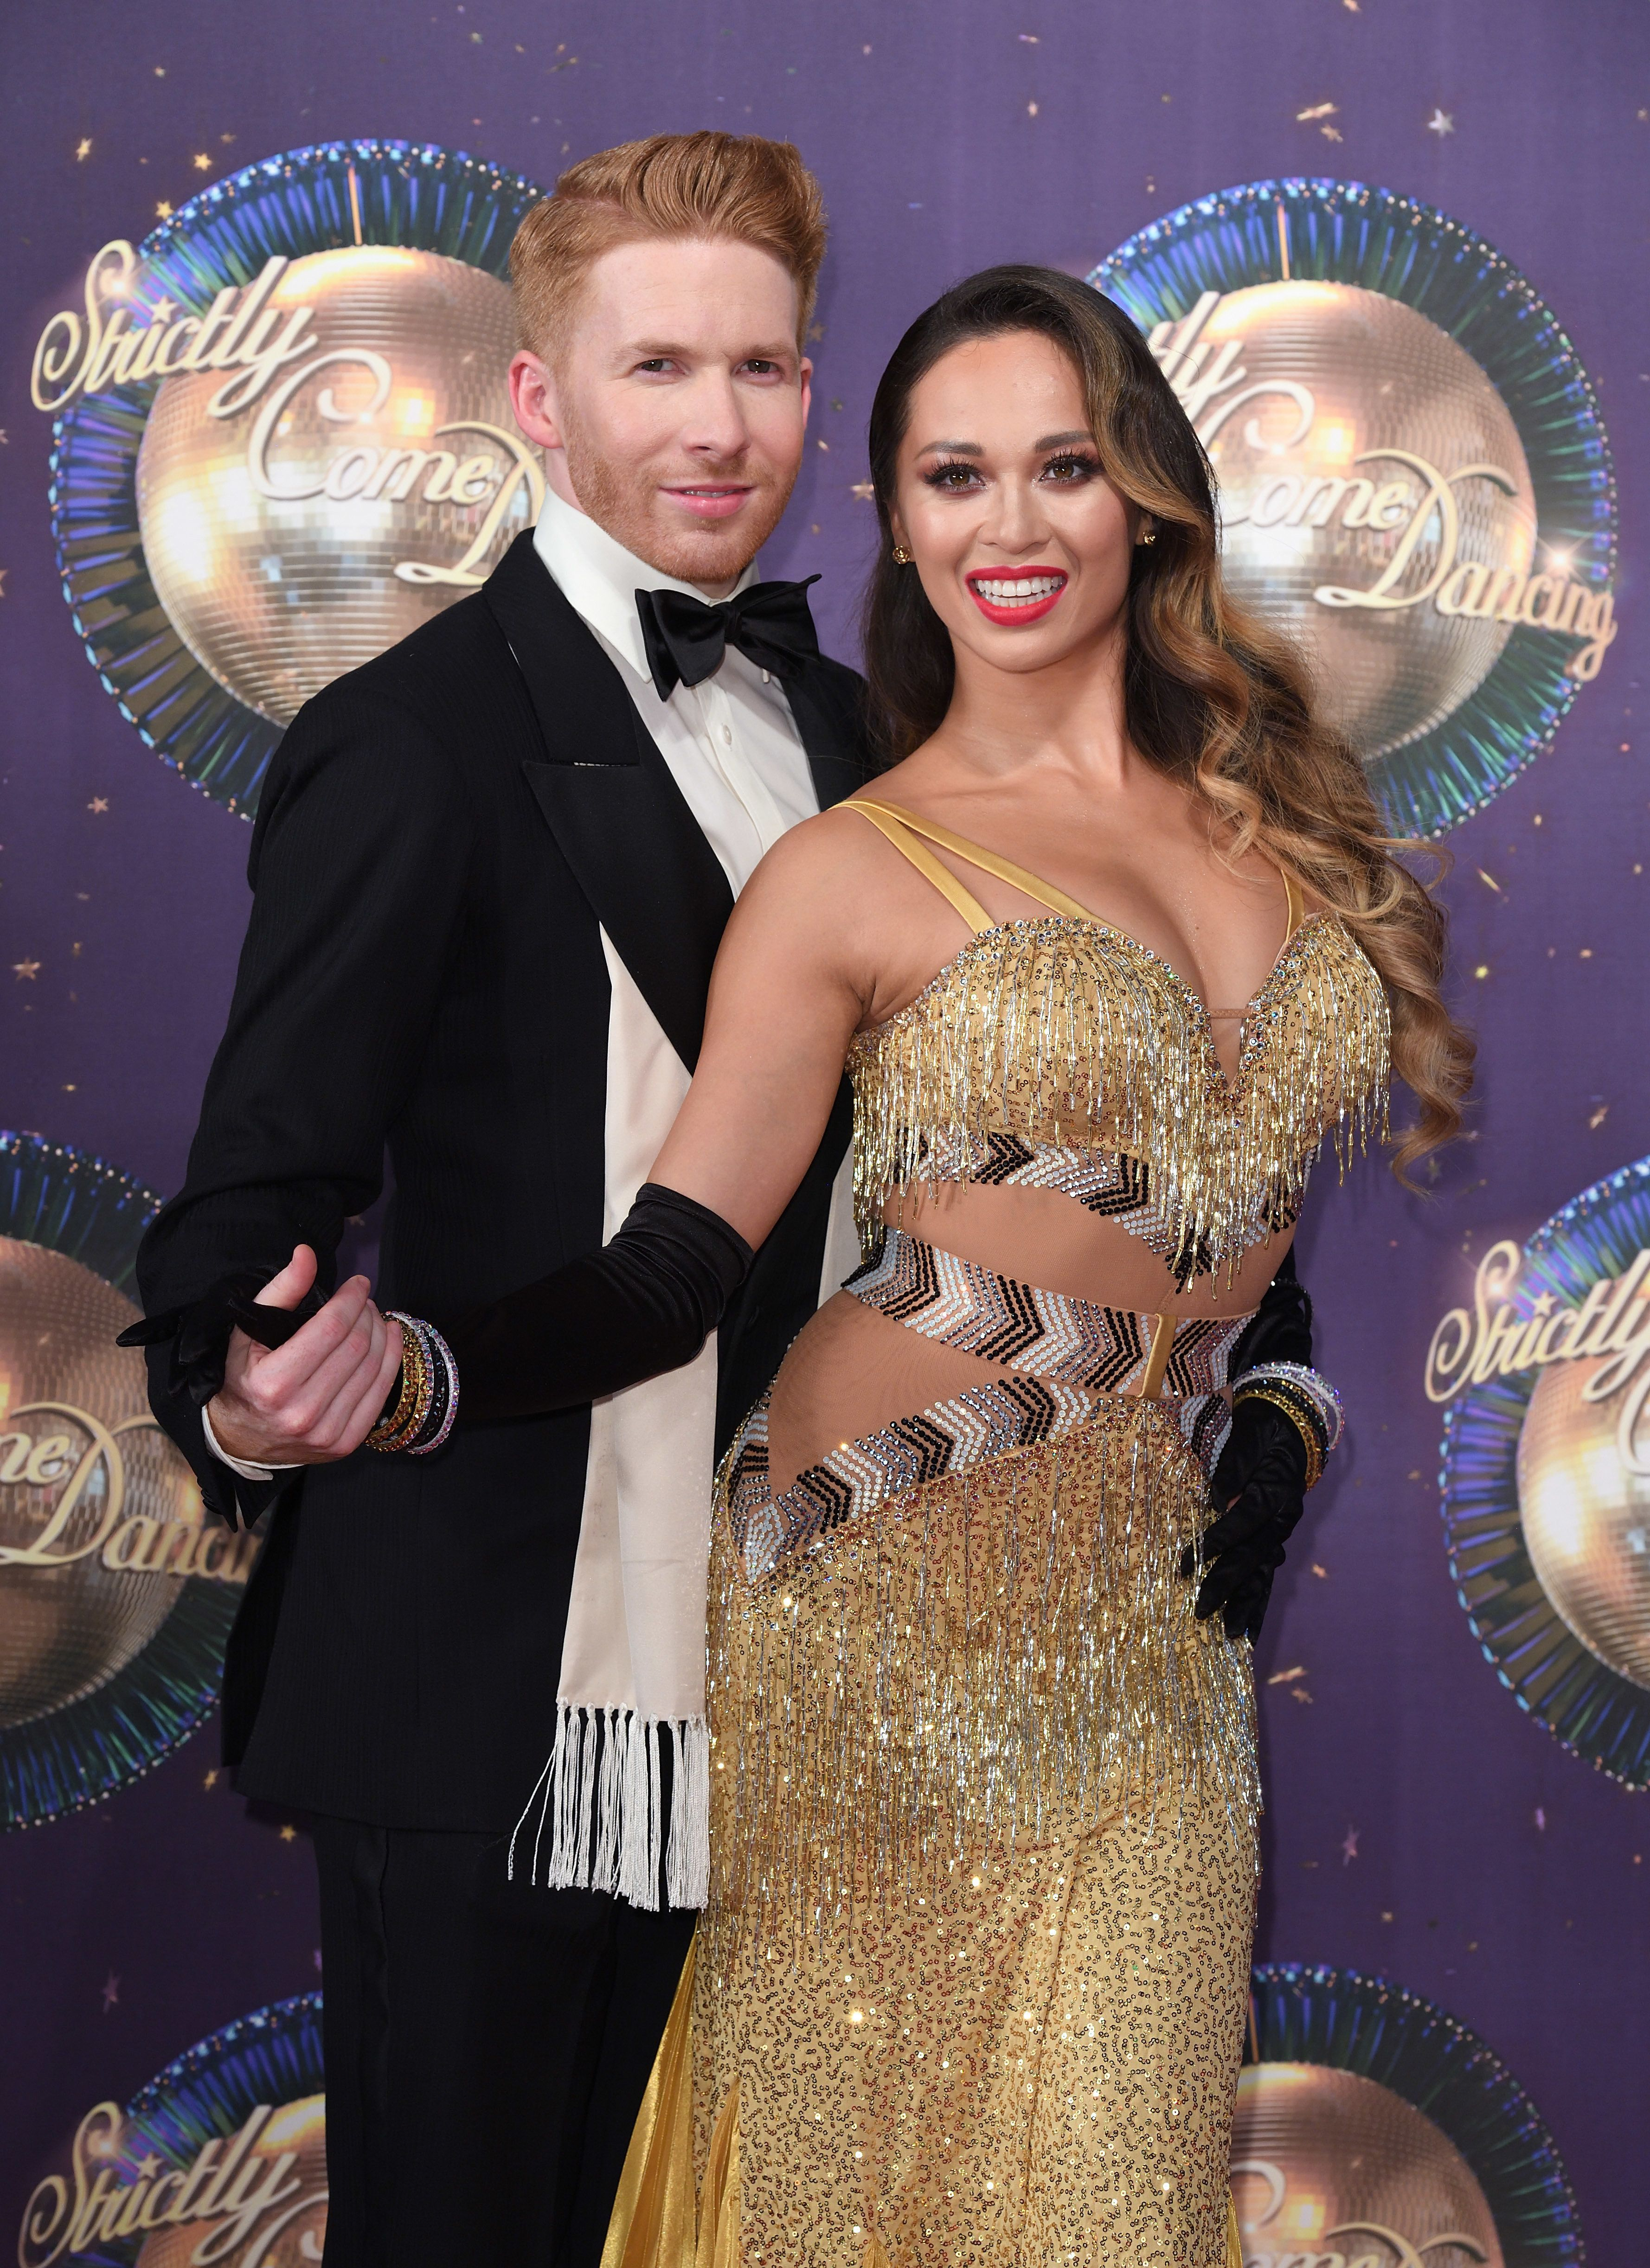 'Strictly' Pro Neil Jones Questioned Existence Of 'Curse' A Week Before Katya And Seann Kiss